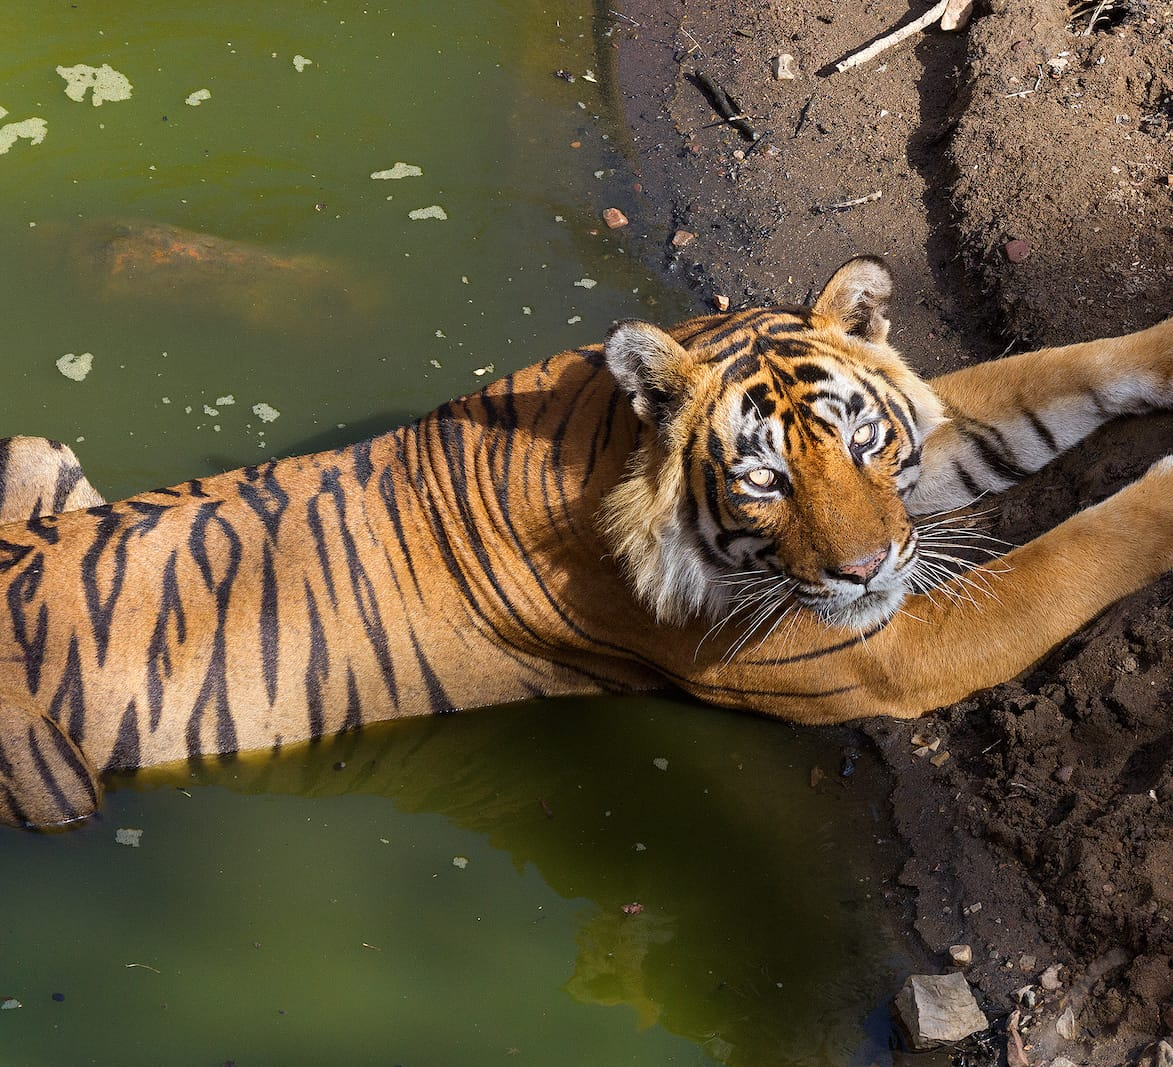 Stepping Stones to Tiger Security: The Need for Inclusive Conservation Models